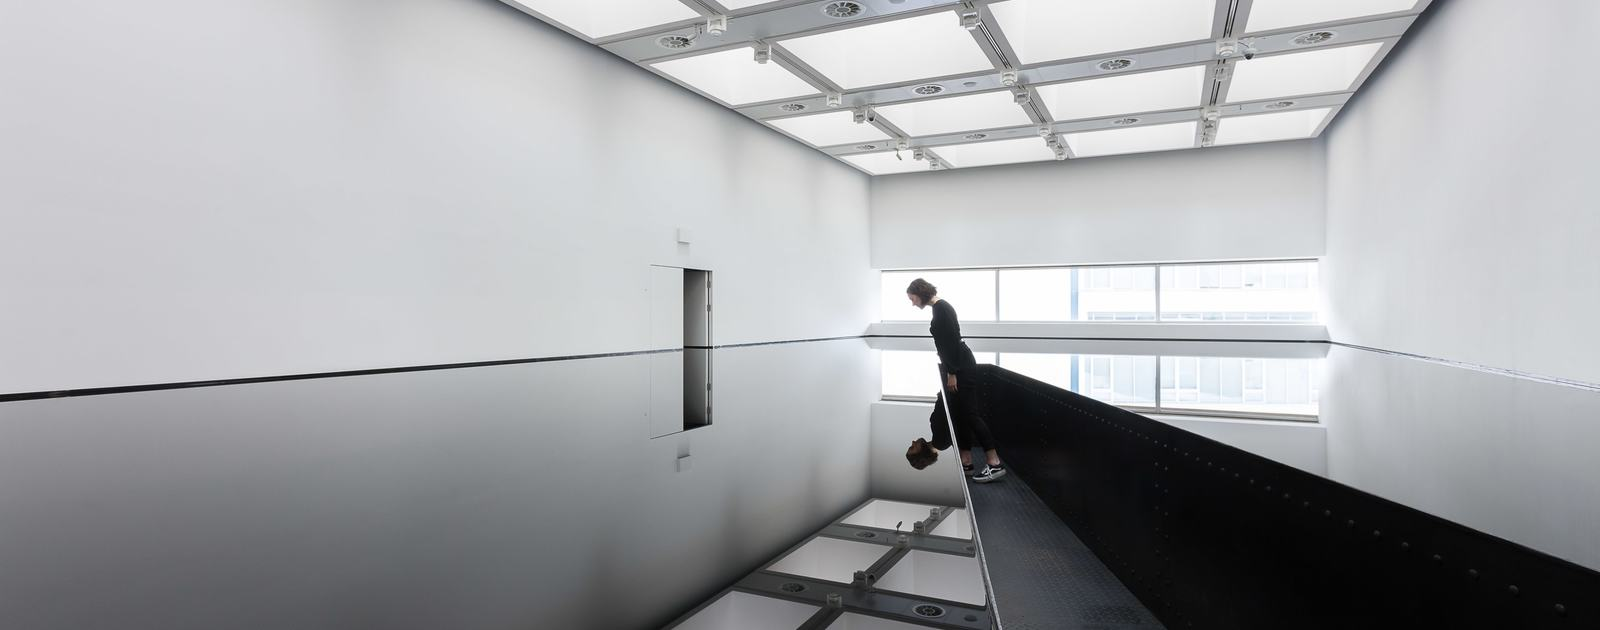 Richard Wilson's 20:50, 1987. Installation view at the Hayward. Image by  Mark Blower , via  South Bank Centre .